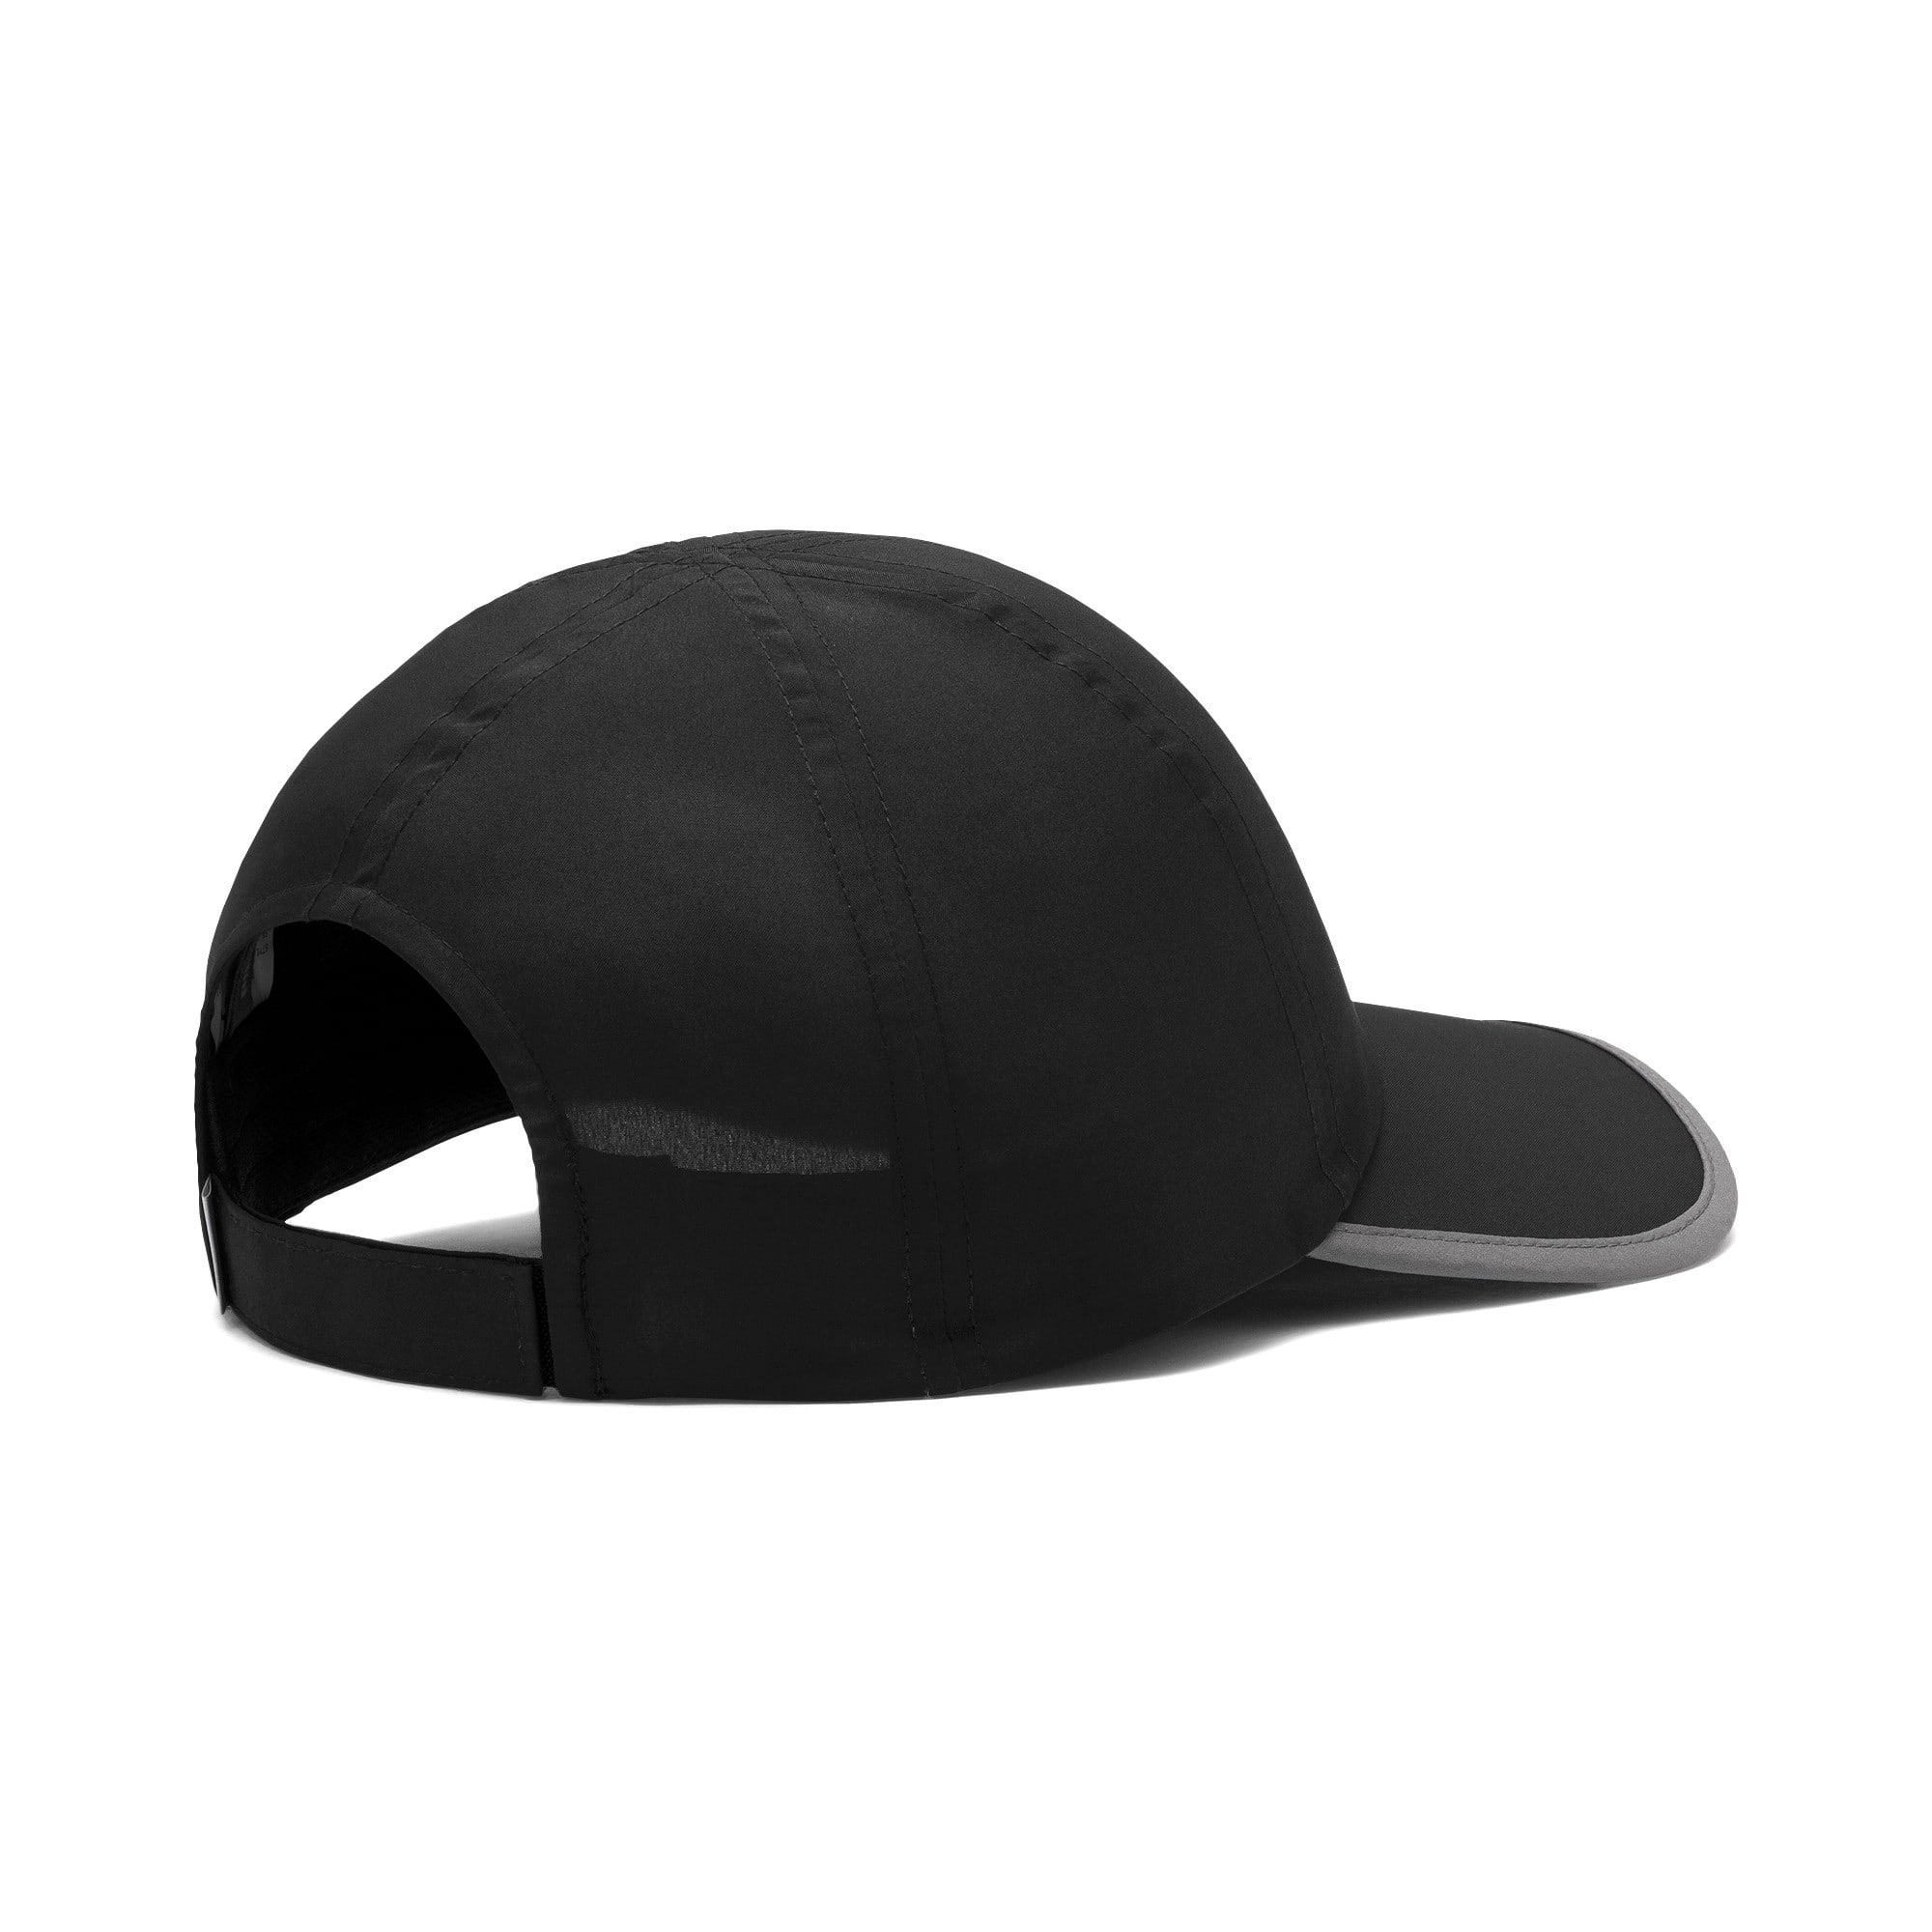 Thumbnail 3 of ESS Running Cap, Puma Black-Cat, medium